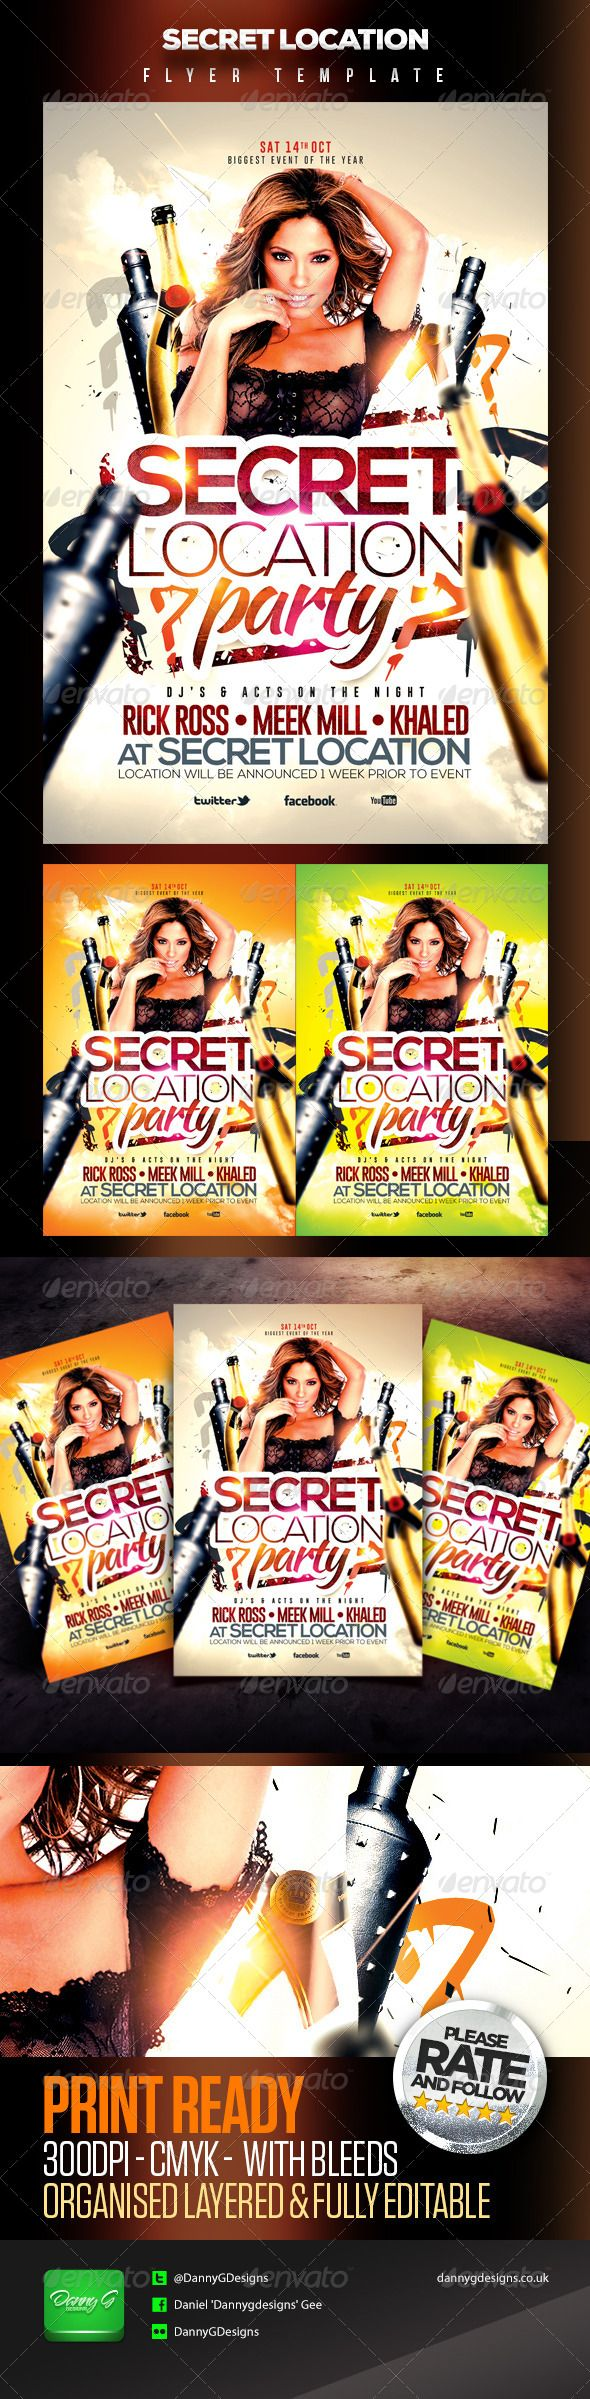 Secret Location Nightclub/Party Flyer Template | Models, Fonts and ...